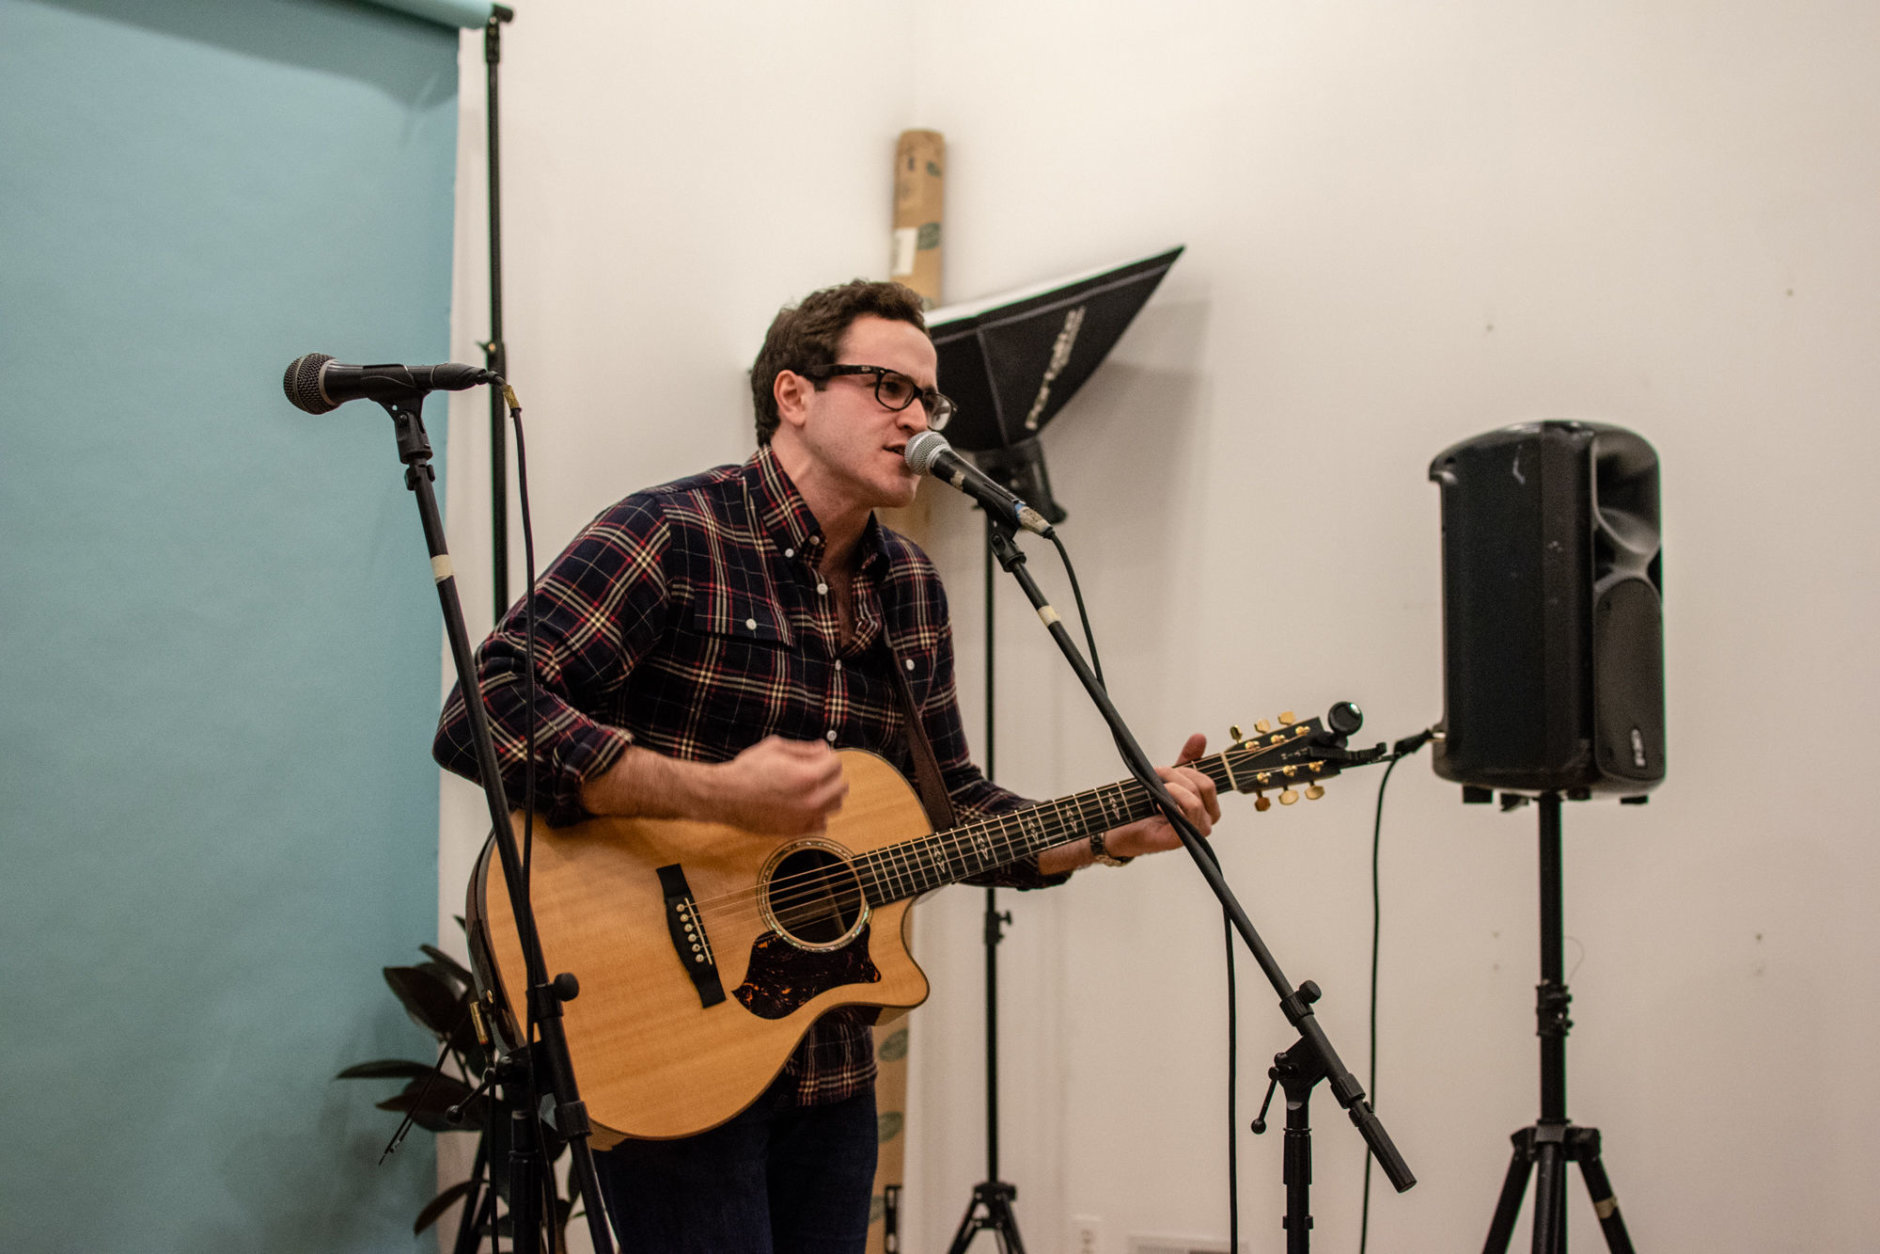 New York-based singer/songwriter Stephen Babcock performs at a D.C. Sofar Sounds concert inside the retail shop Hugh & Crye. (Photo credit Marcelo Perelmuter)